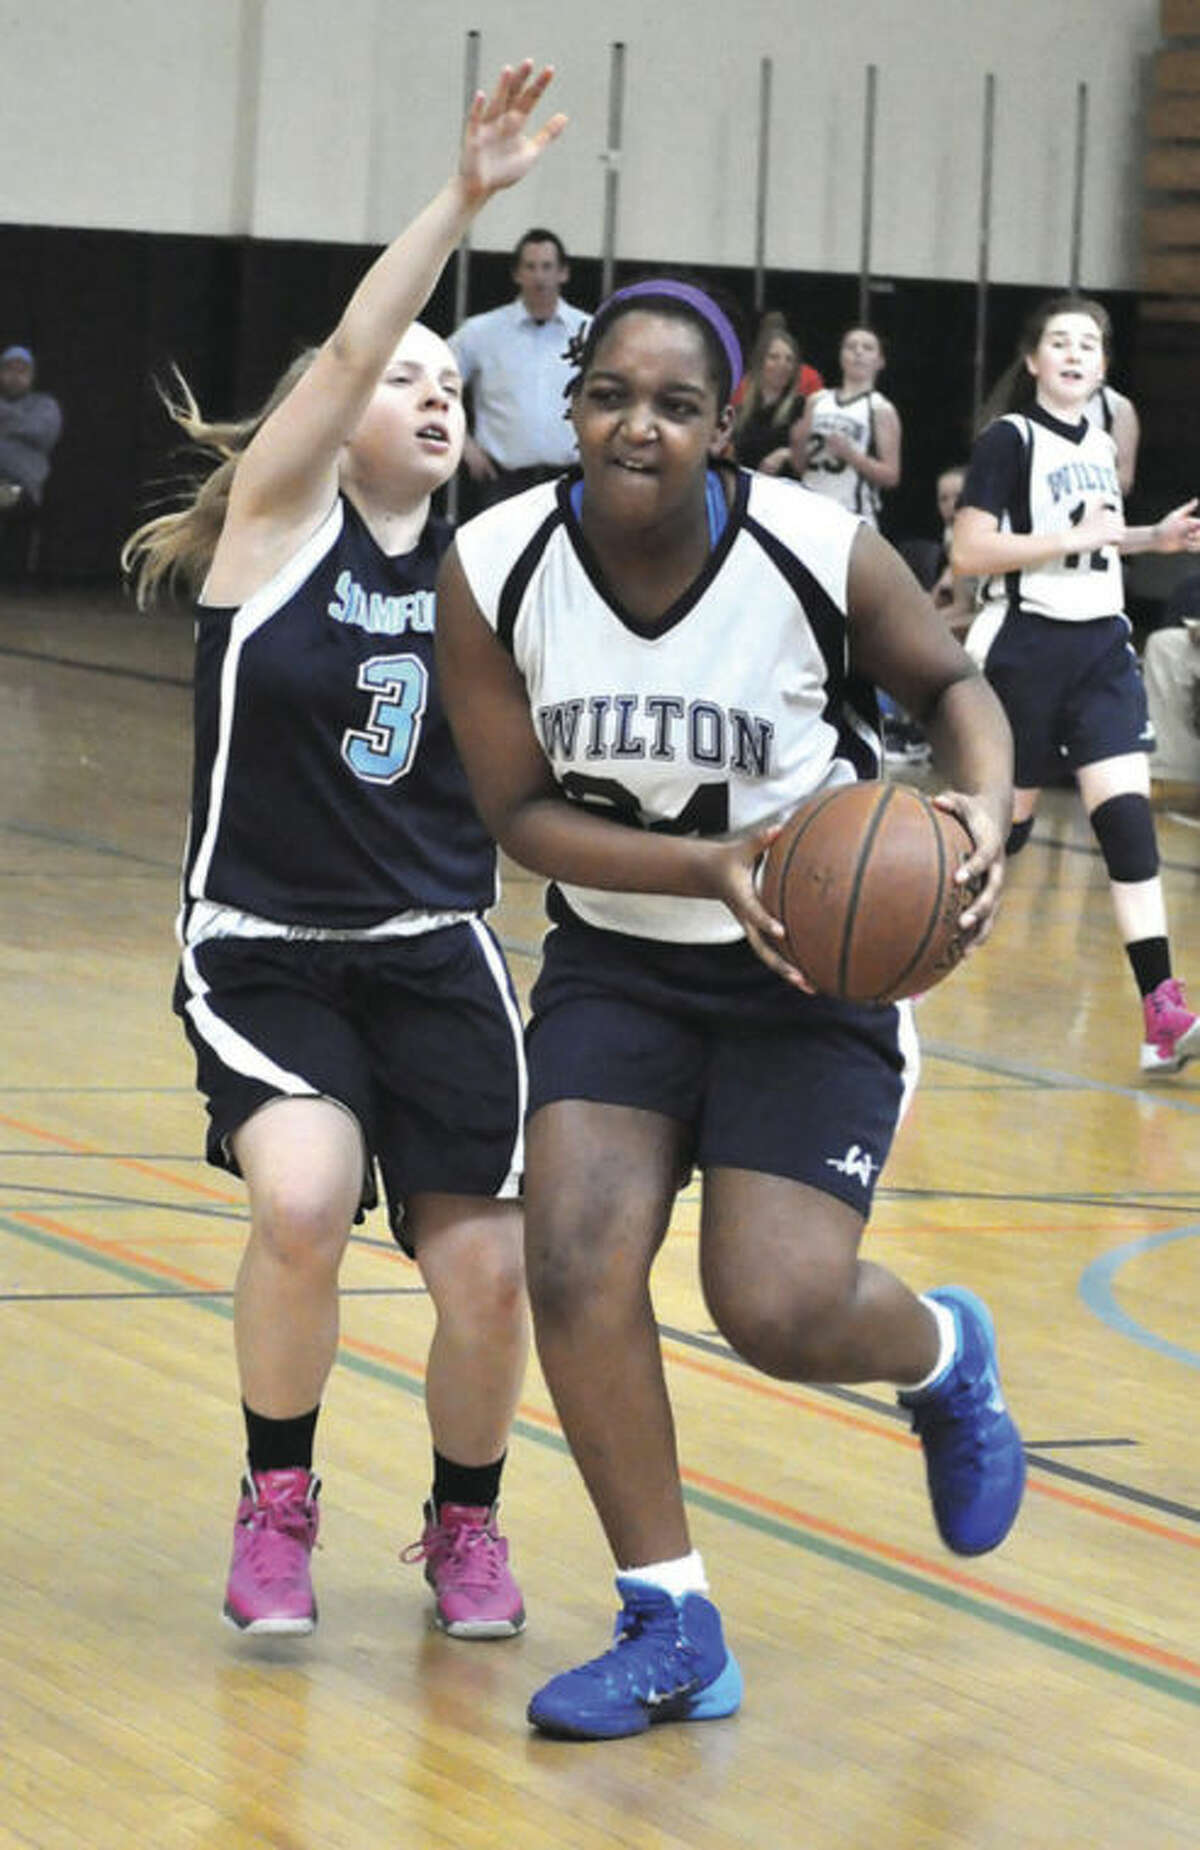 Photo by Hayley Meyer Wilton's Adia Burrows, right, drives past a defender during Sunday's championship game.